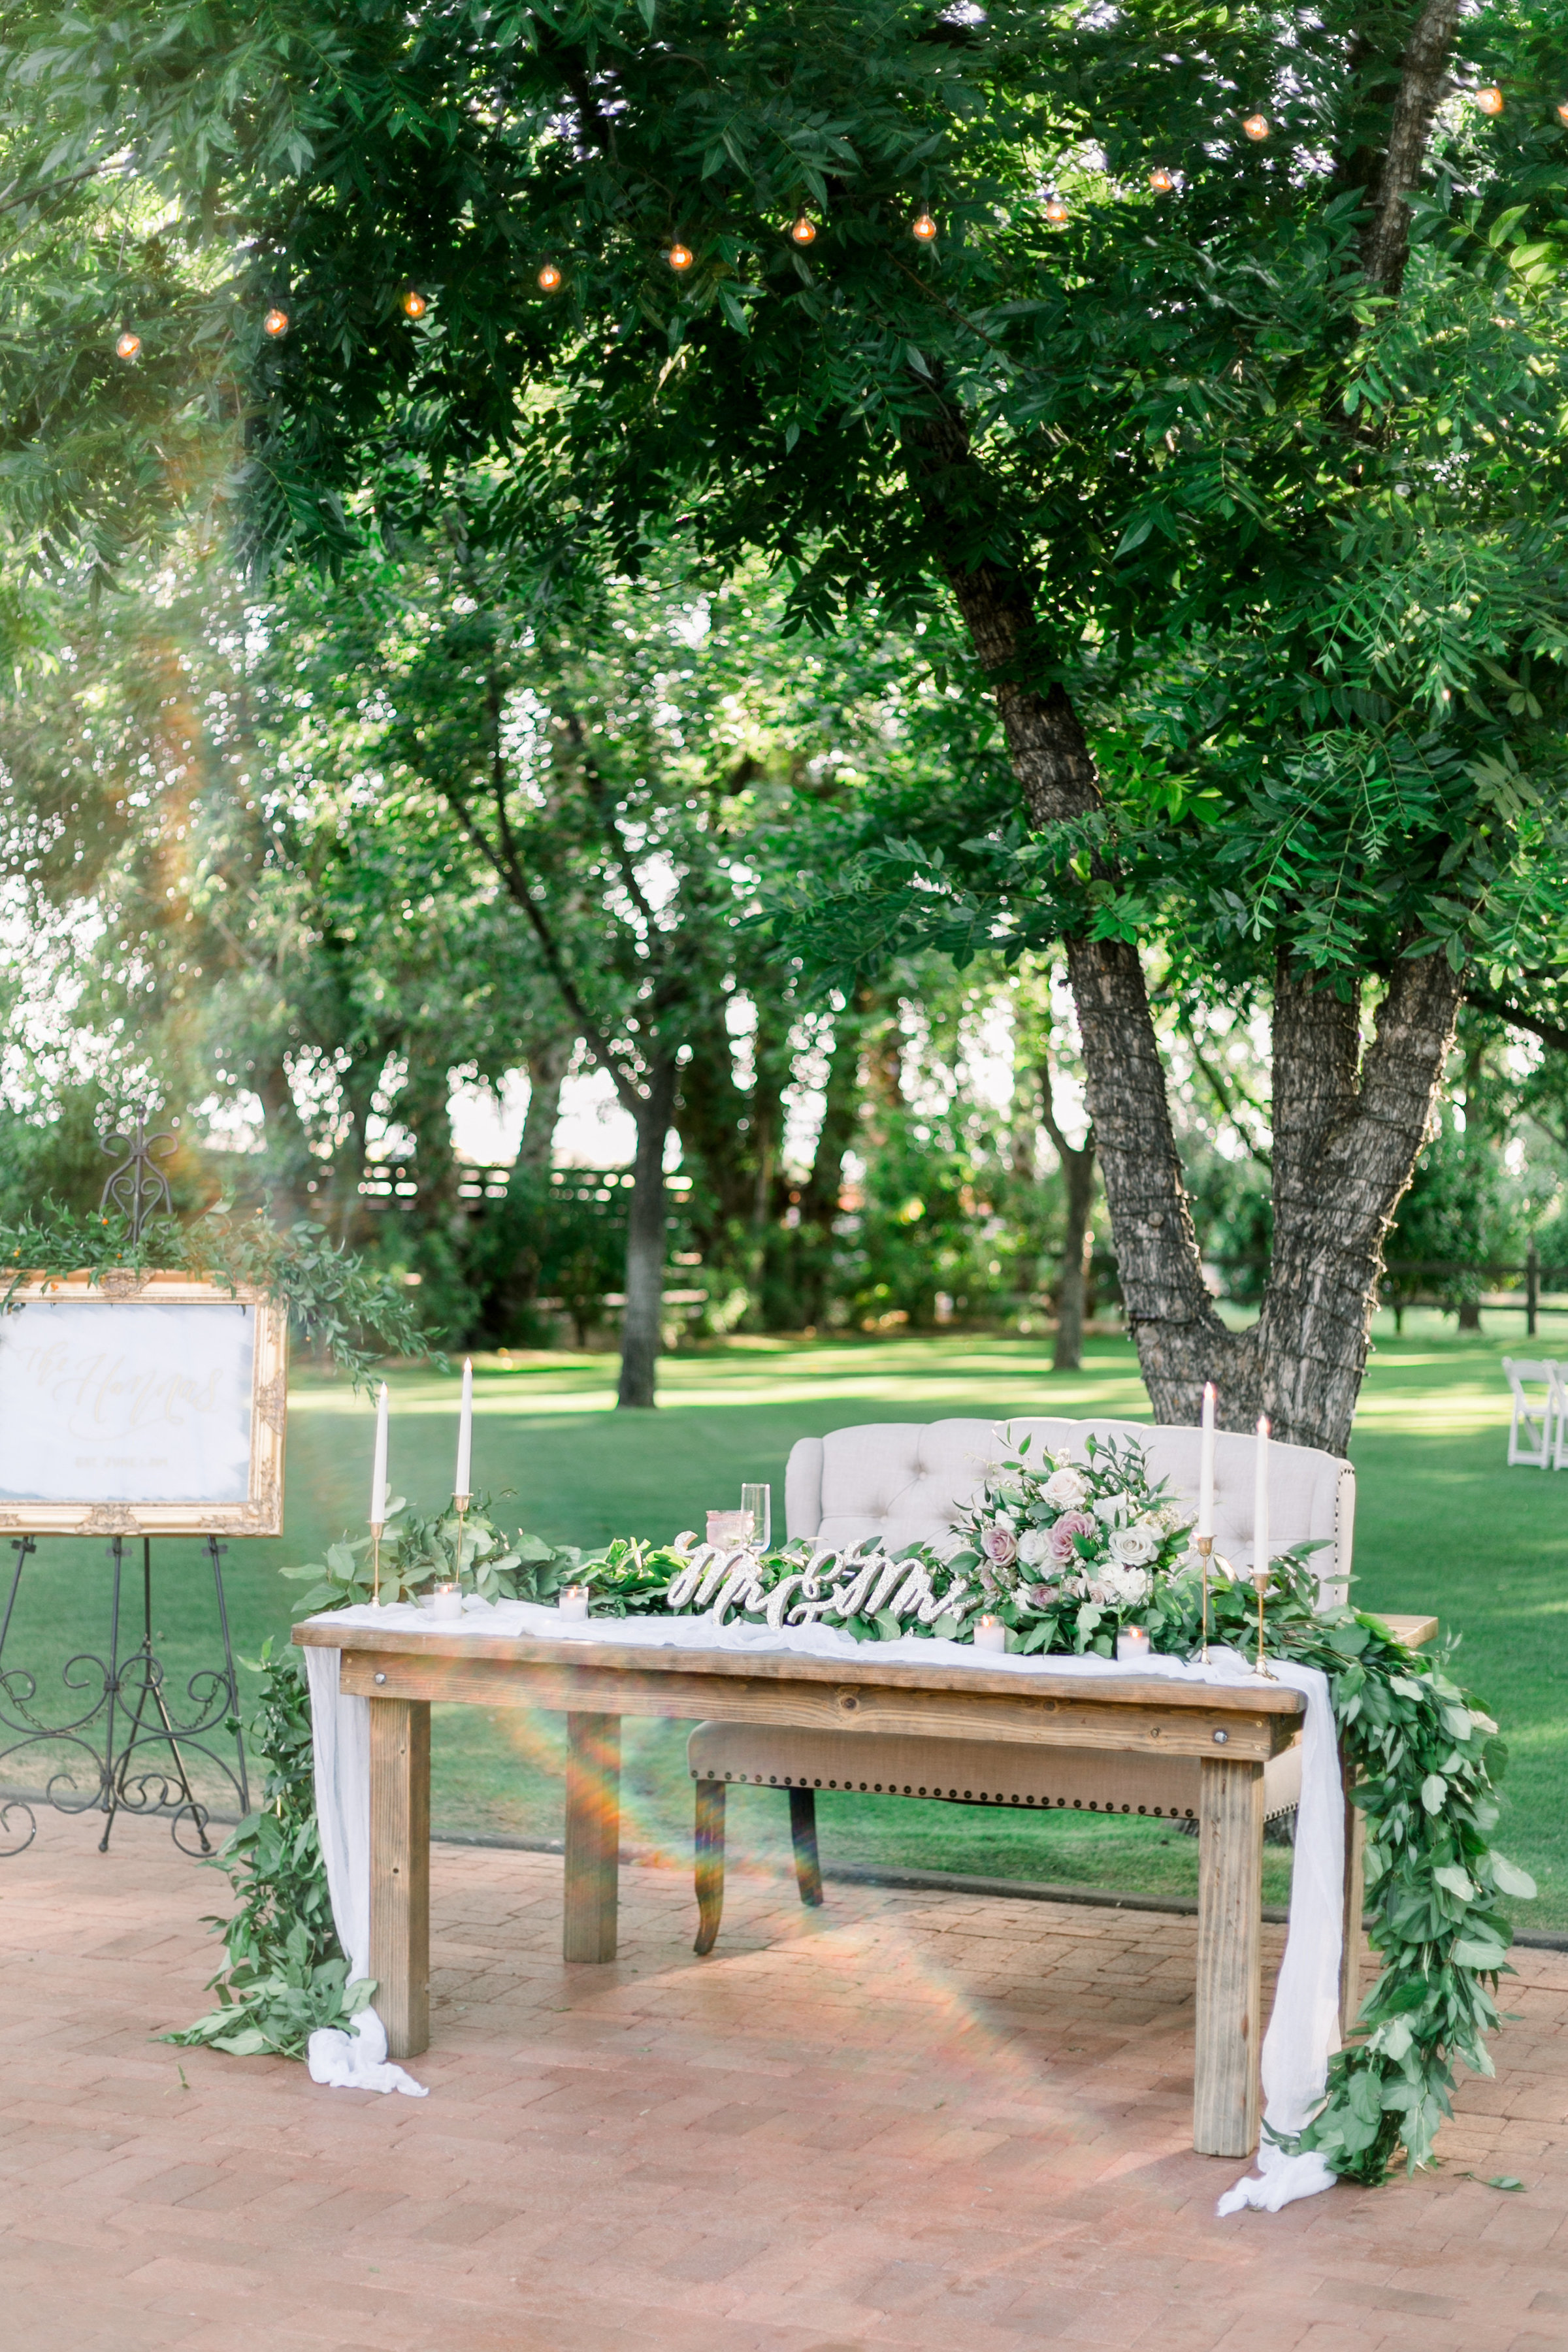 Karlie Colleen Photography - Venue At The Grove - Arizona Wedding - Maggie & Grant -78